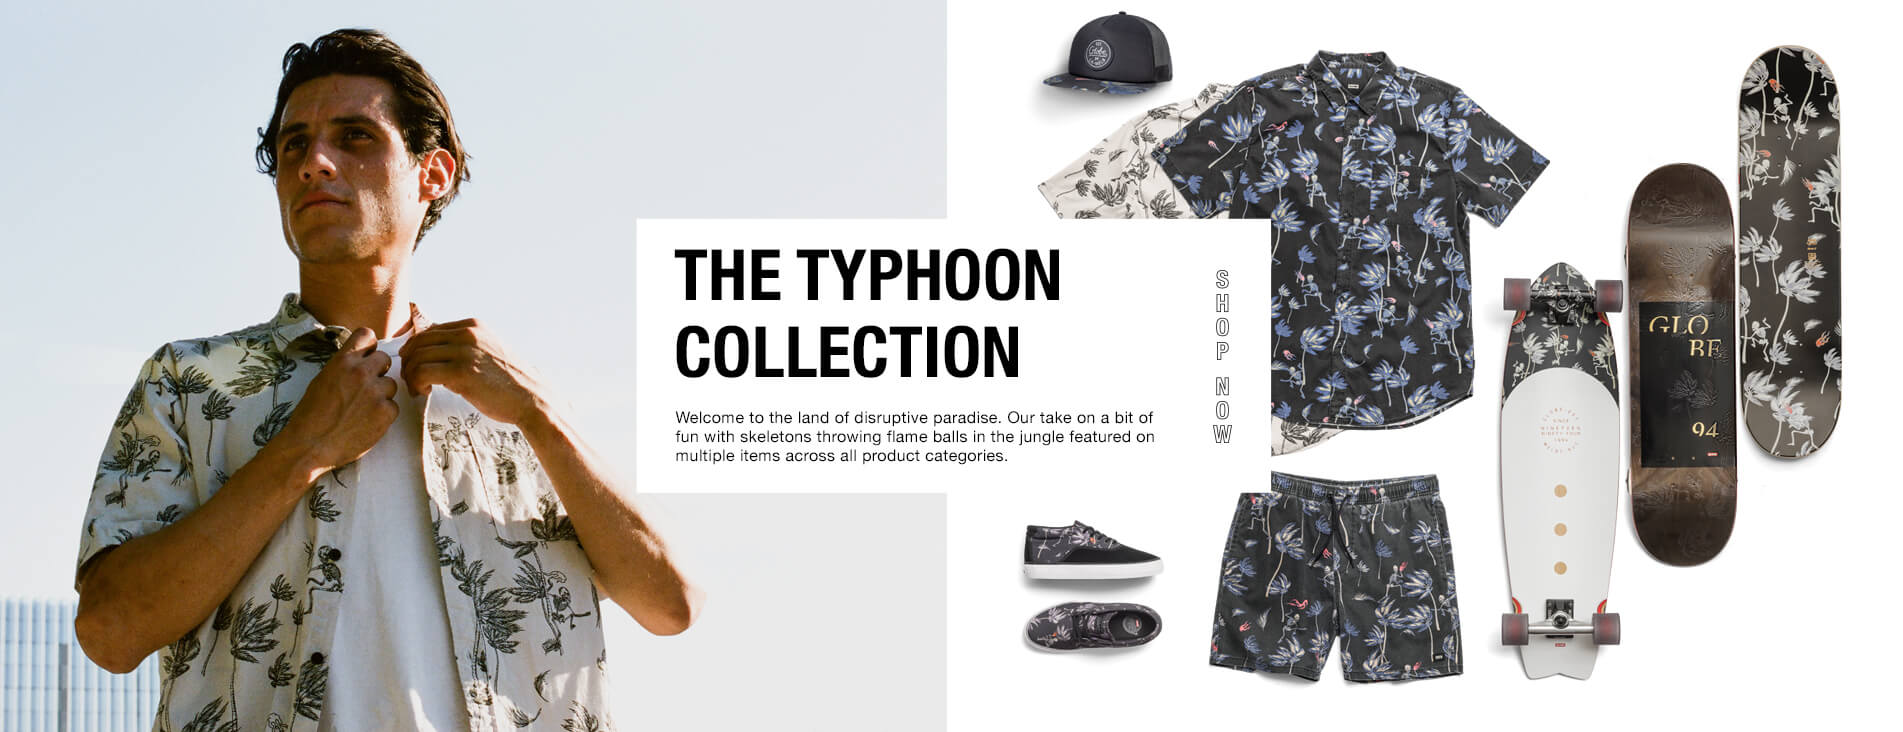 THE TYPHOON COLLECTION